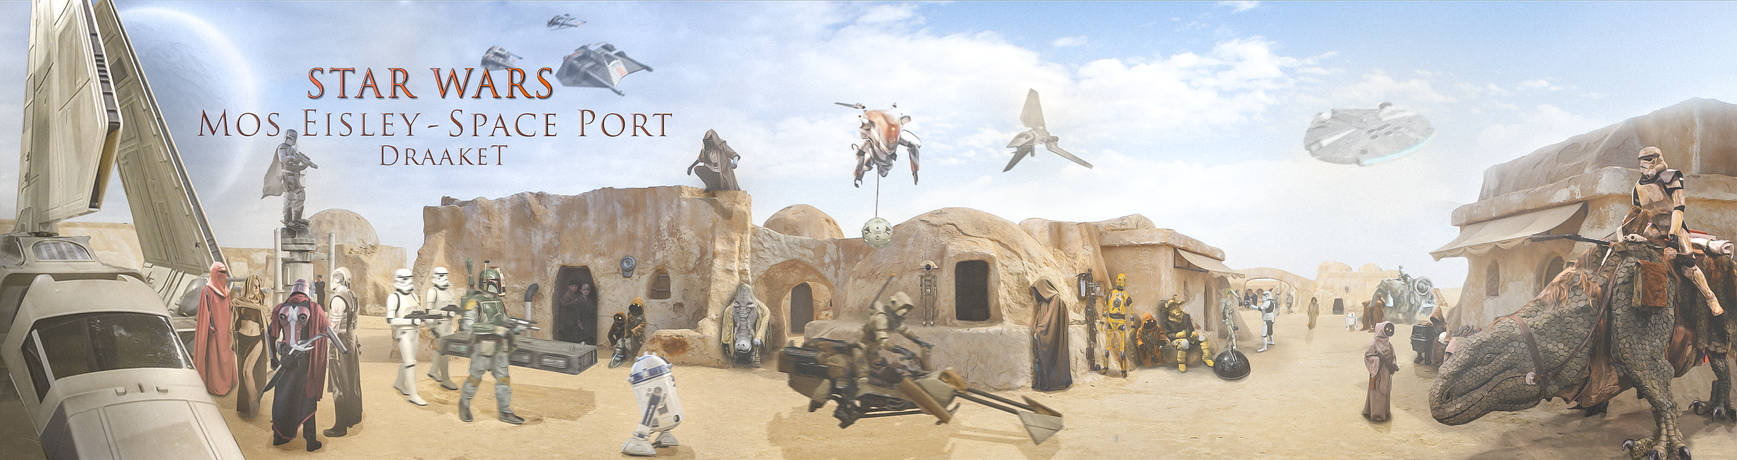 Mos Eisley Space Port - 4000x1060 - by DraakeT